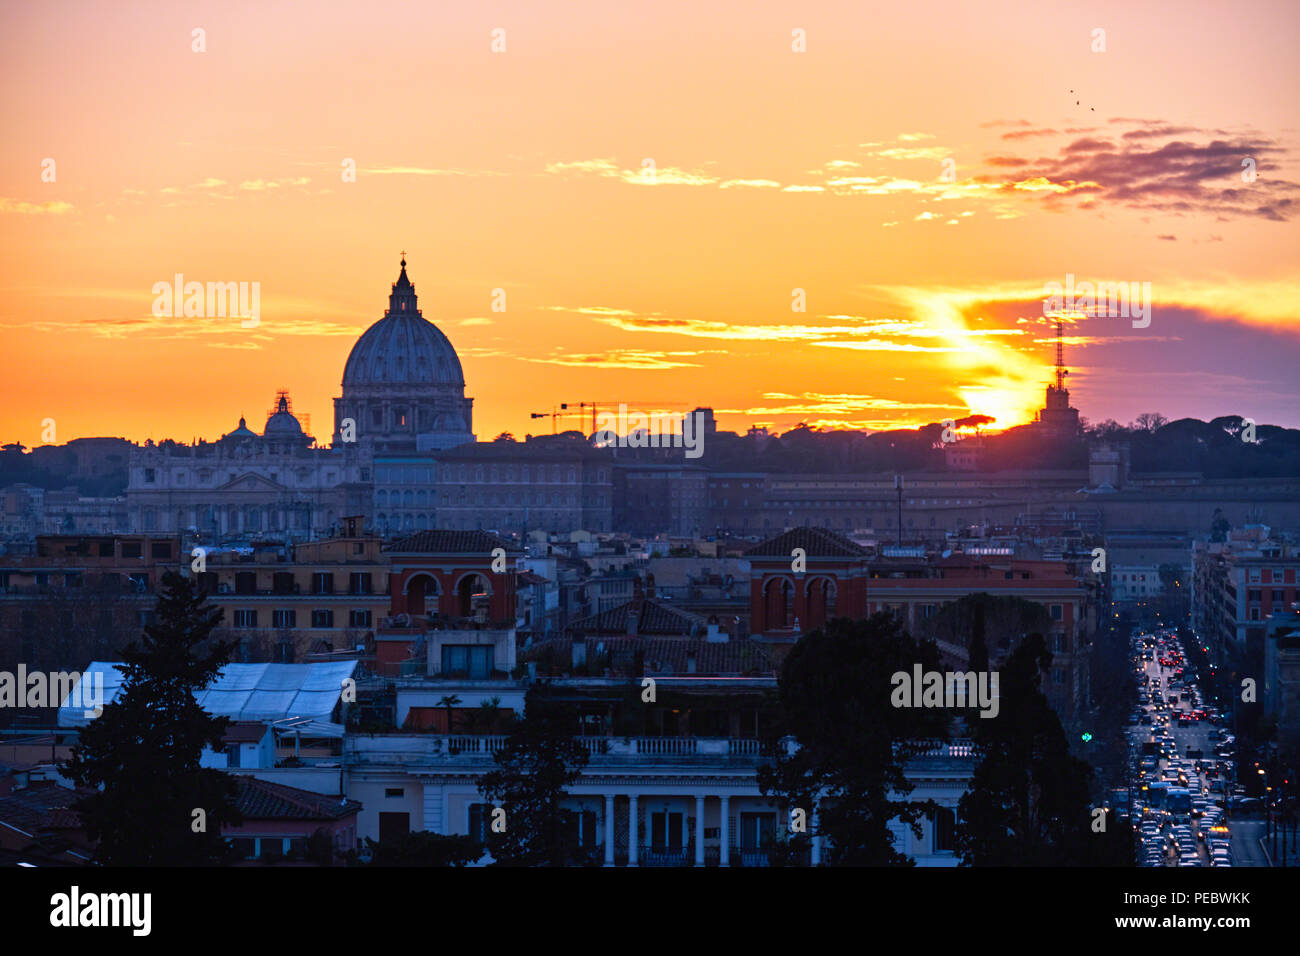 Sunset View of Rome from The Villa Borghese, Rome, Lazio, Italy - Stock Image